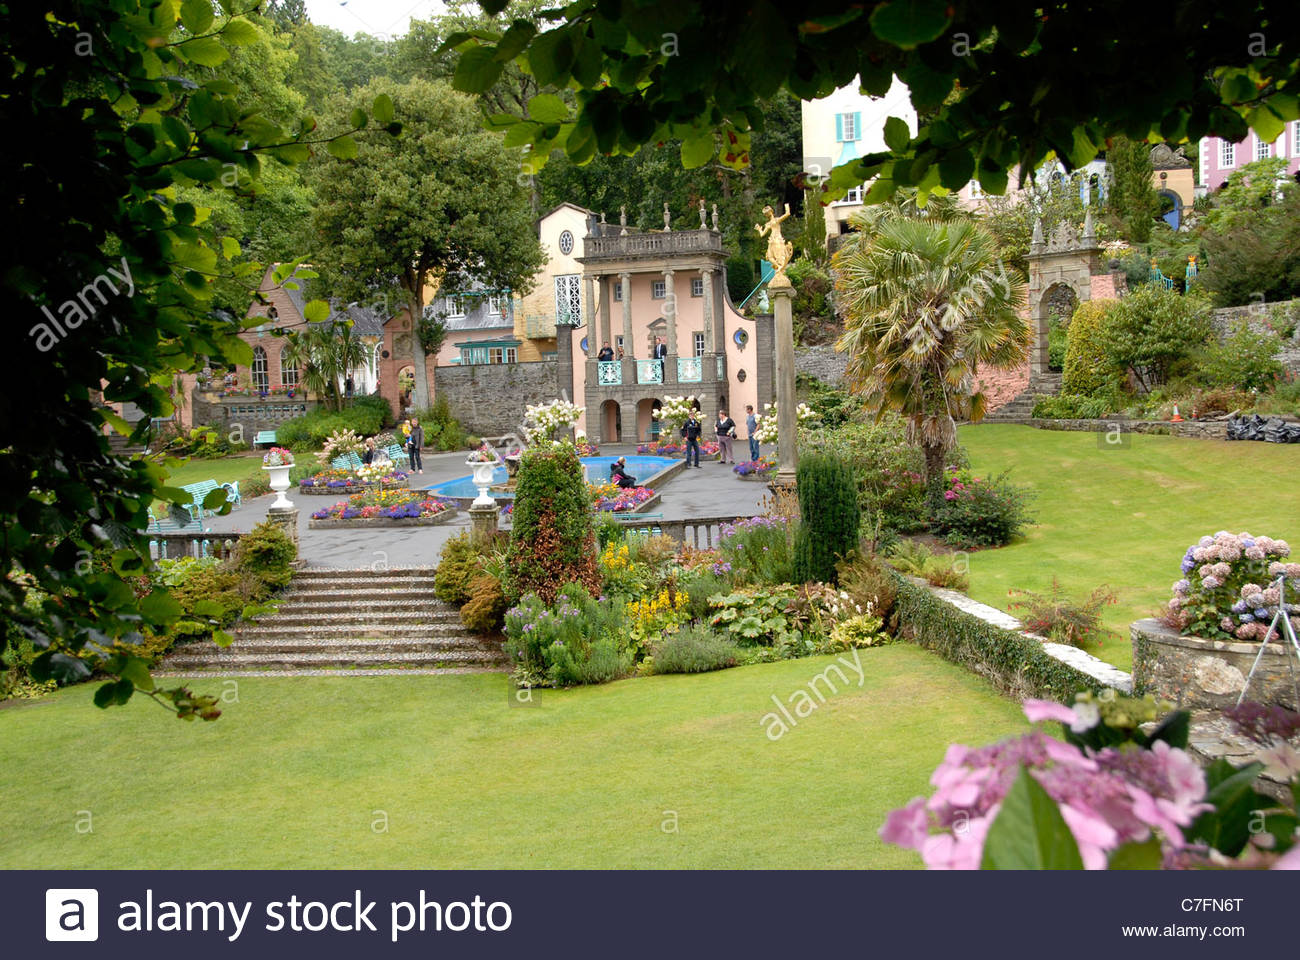 Portmeirion North Wales, Portmeirion village in north Wales created by Sir Clough Williams ...